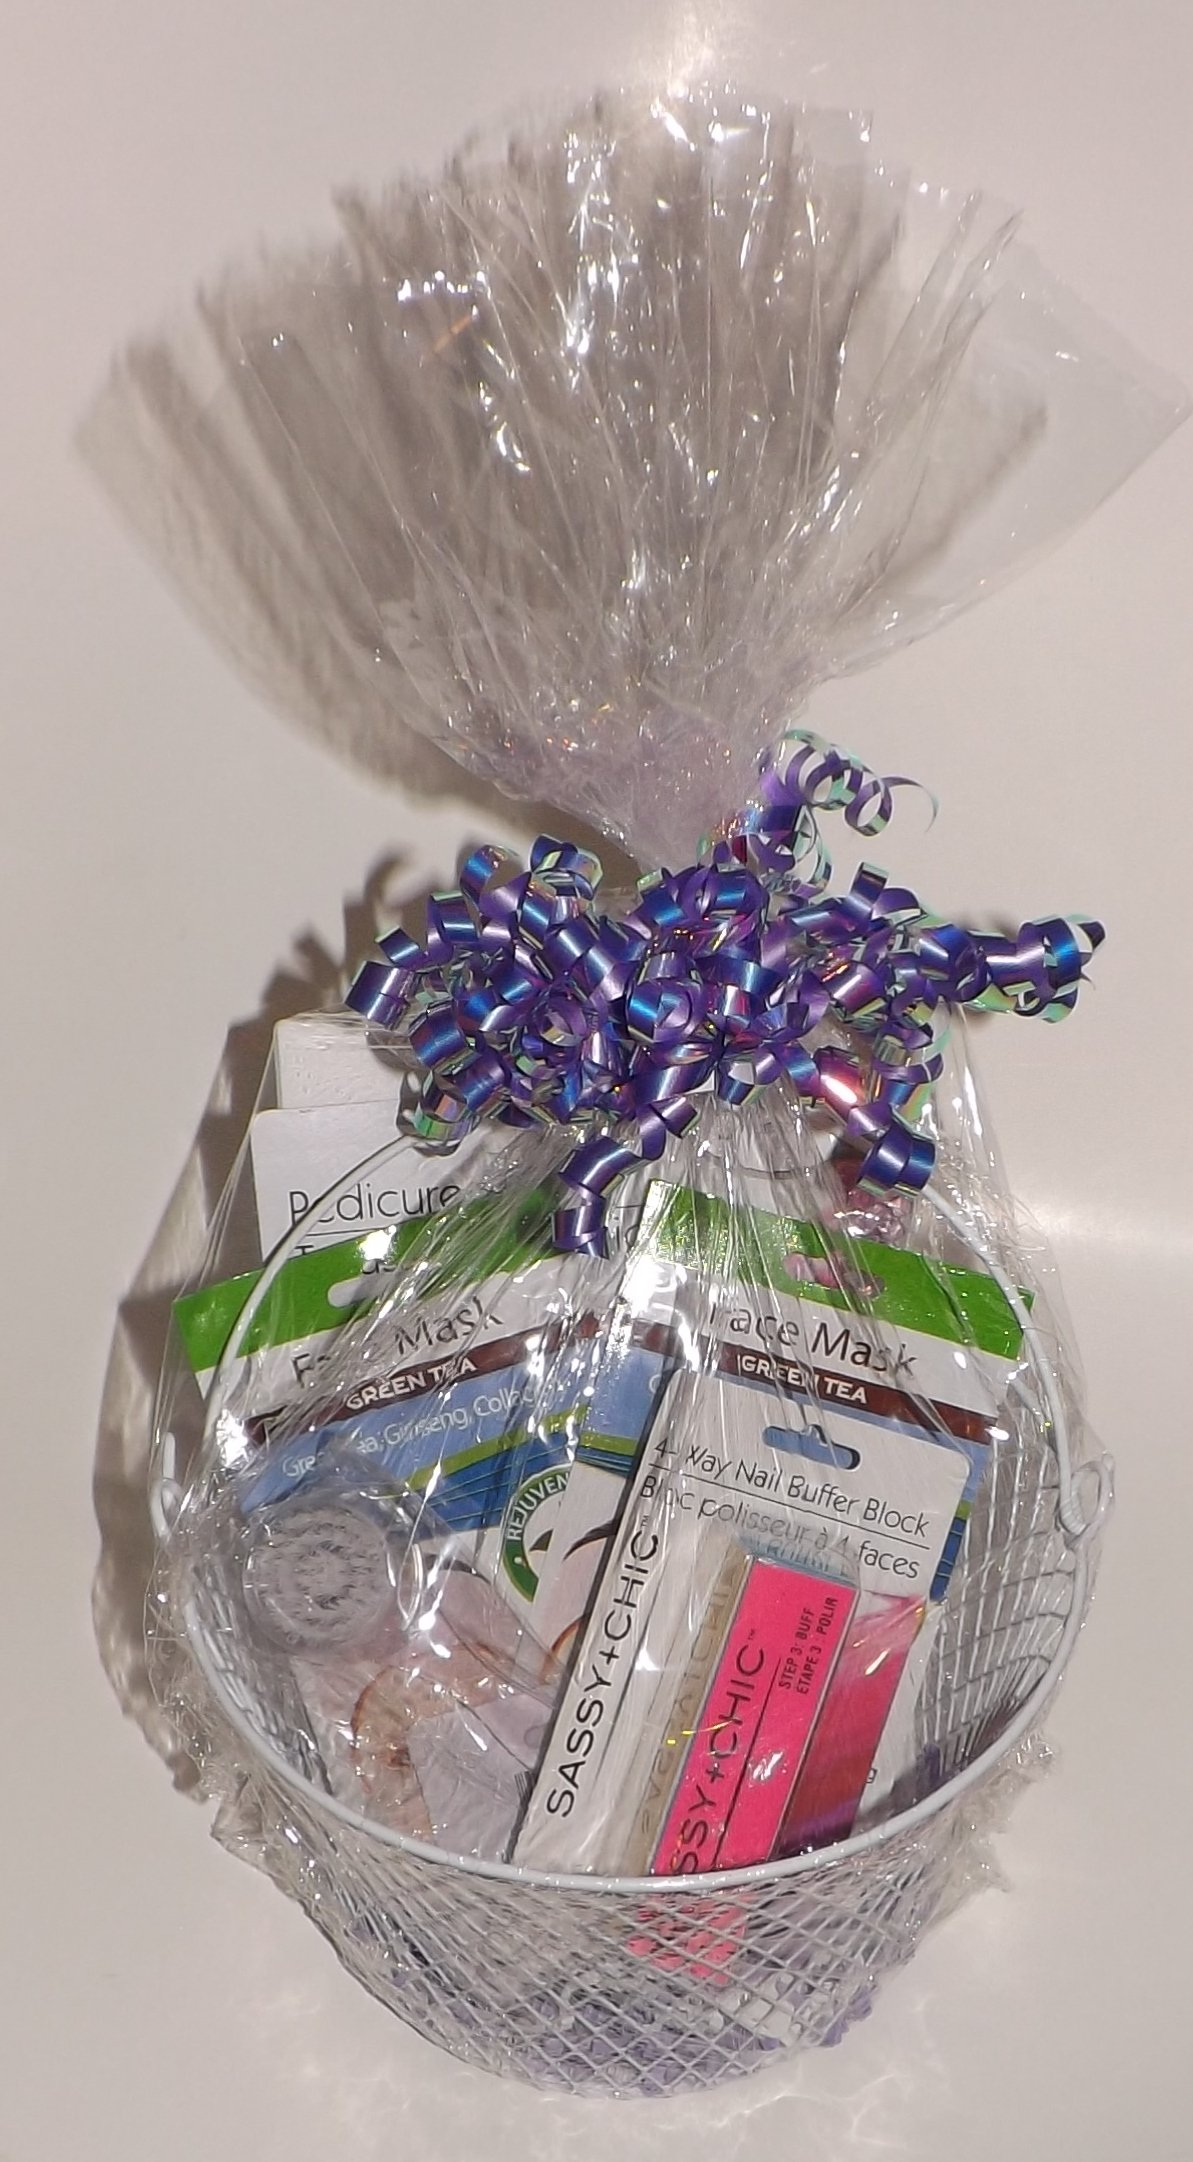 Gift Basket Mother's Day Birthday Bundle - 11 piece - Includes Pedicure set, Eye Mask, Face Masks, Nail Buffer Block, Facial Brush and a Reusable Basket